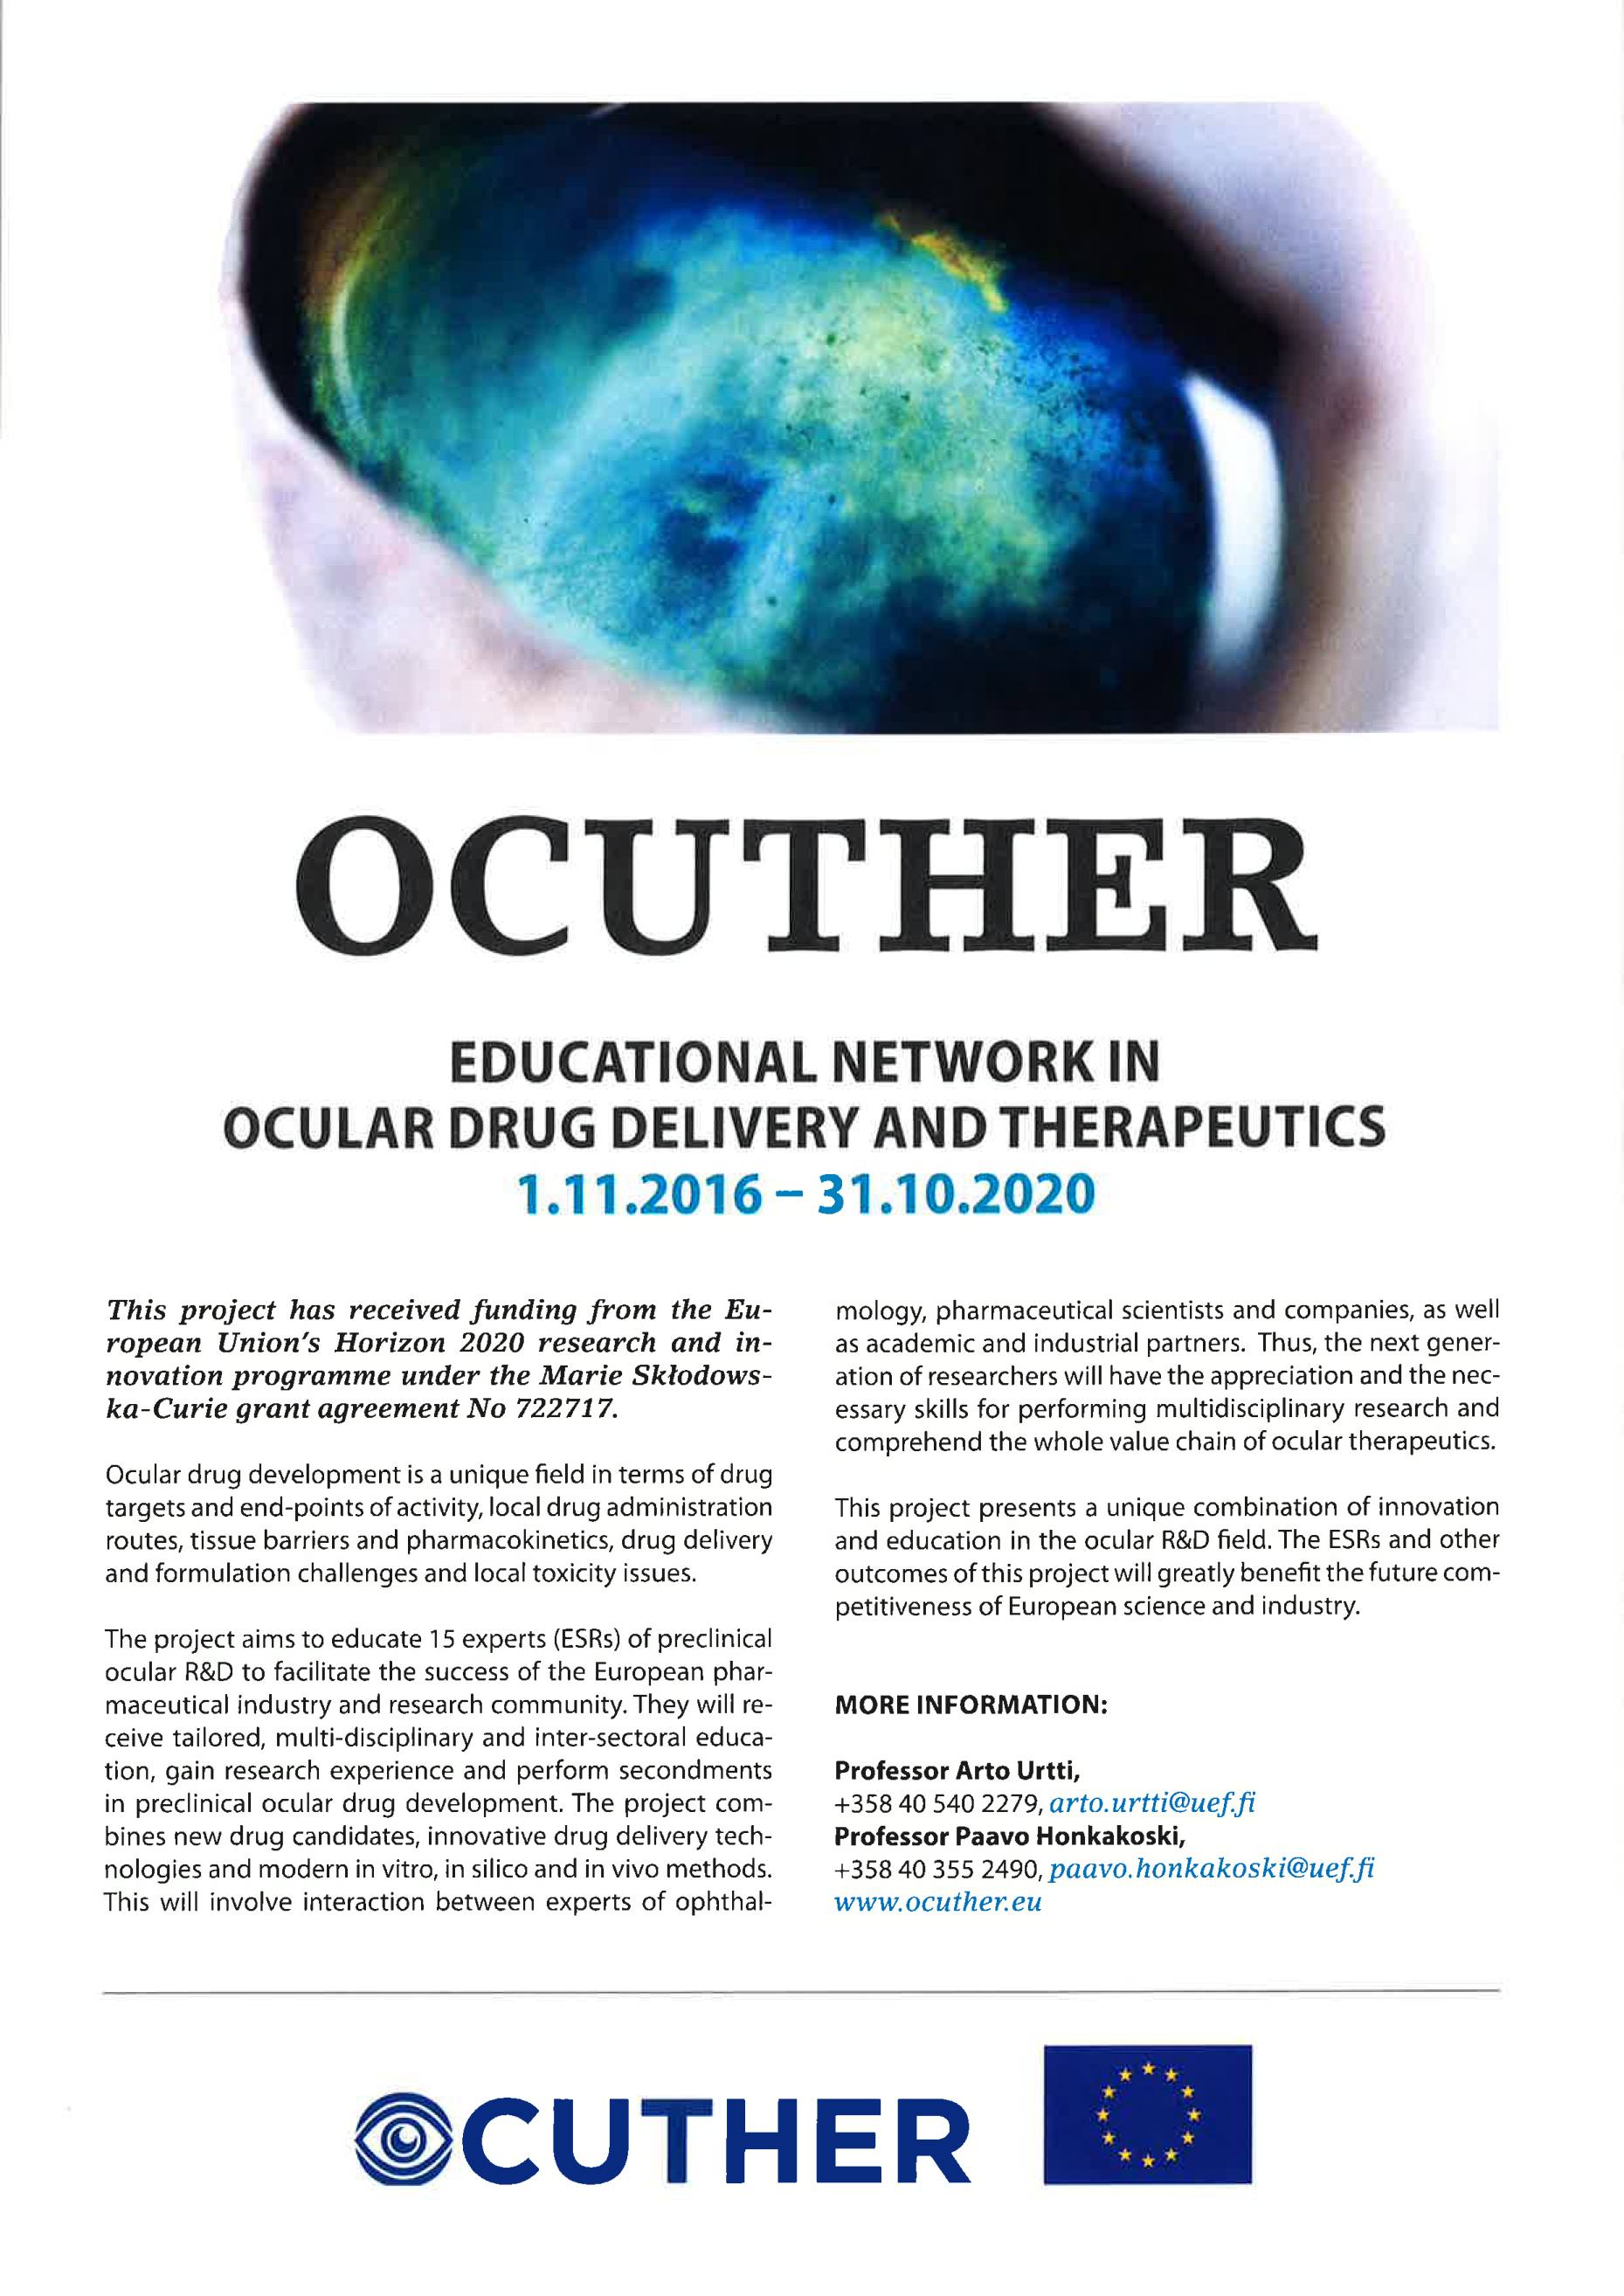 OcuTher flyer with information on the project, including the picture of an eye, the OcuTher logo and EU-flag